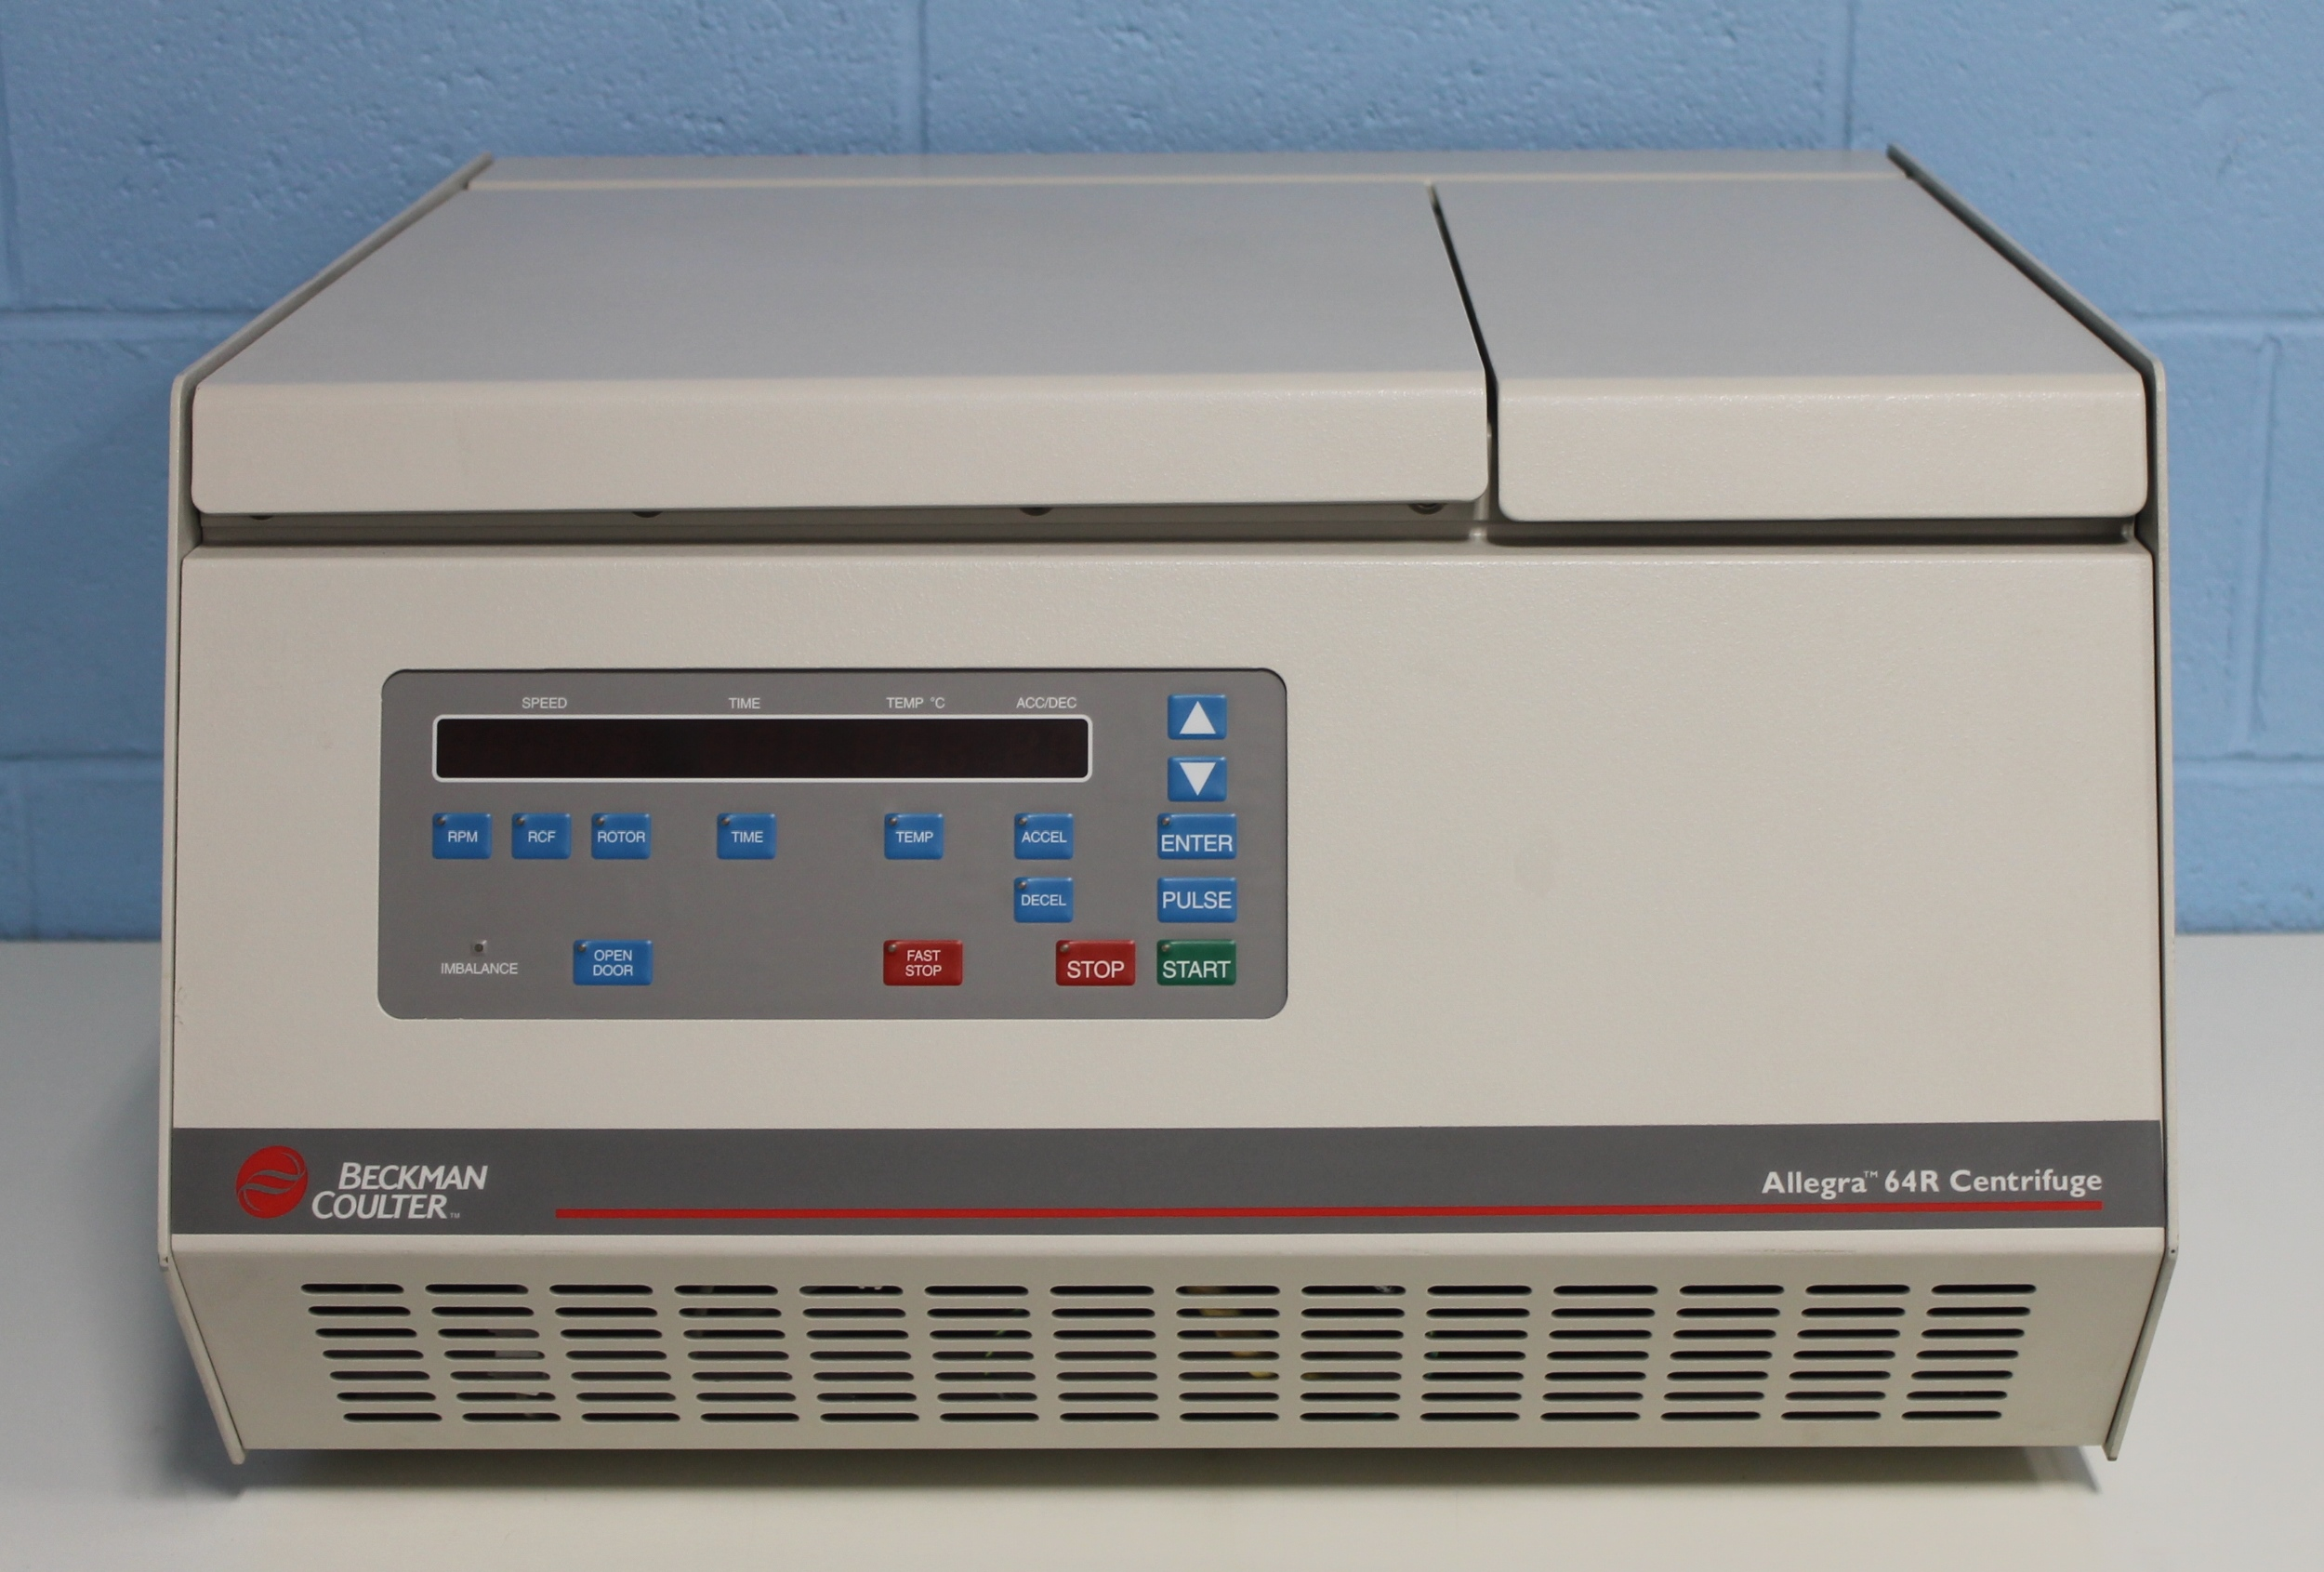 Beckman Coulter Allegra 64R High-Speed Refrigerated Centrifuge Image